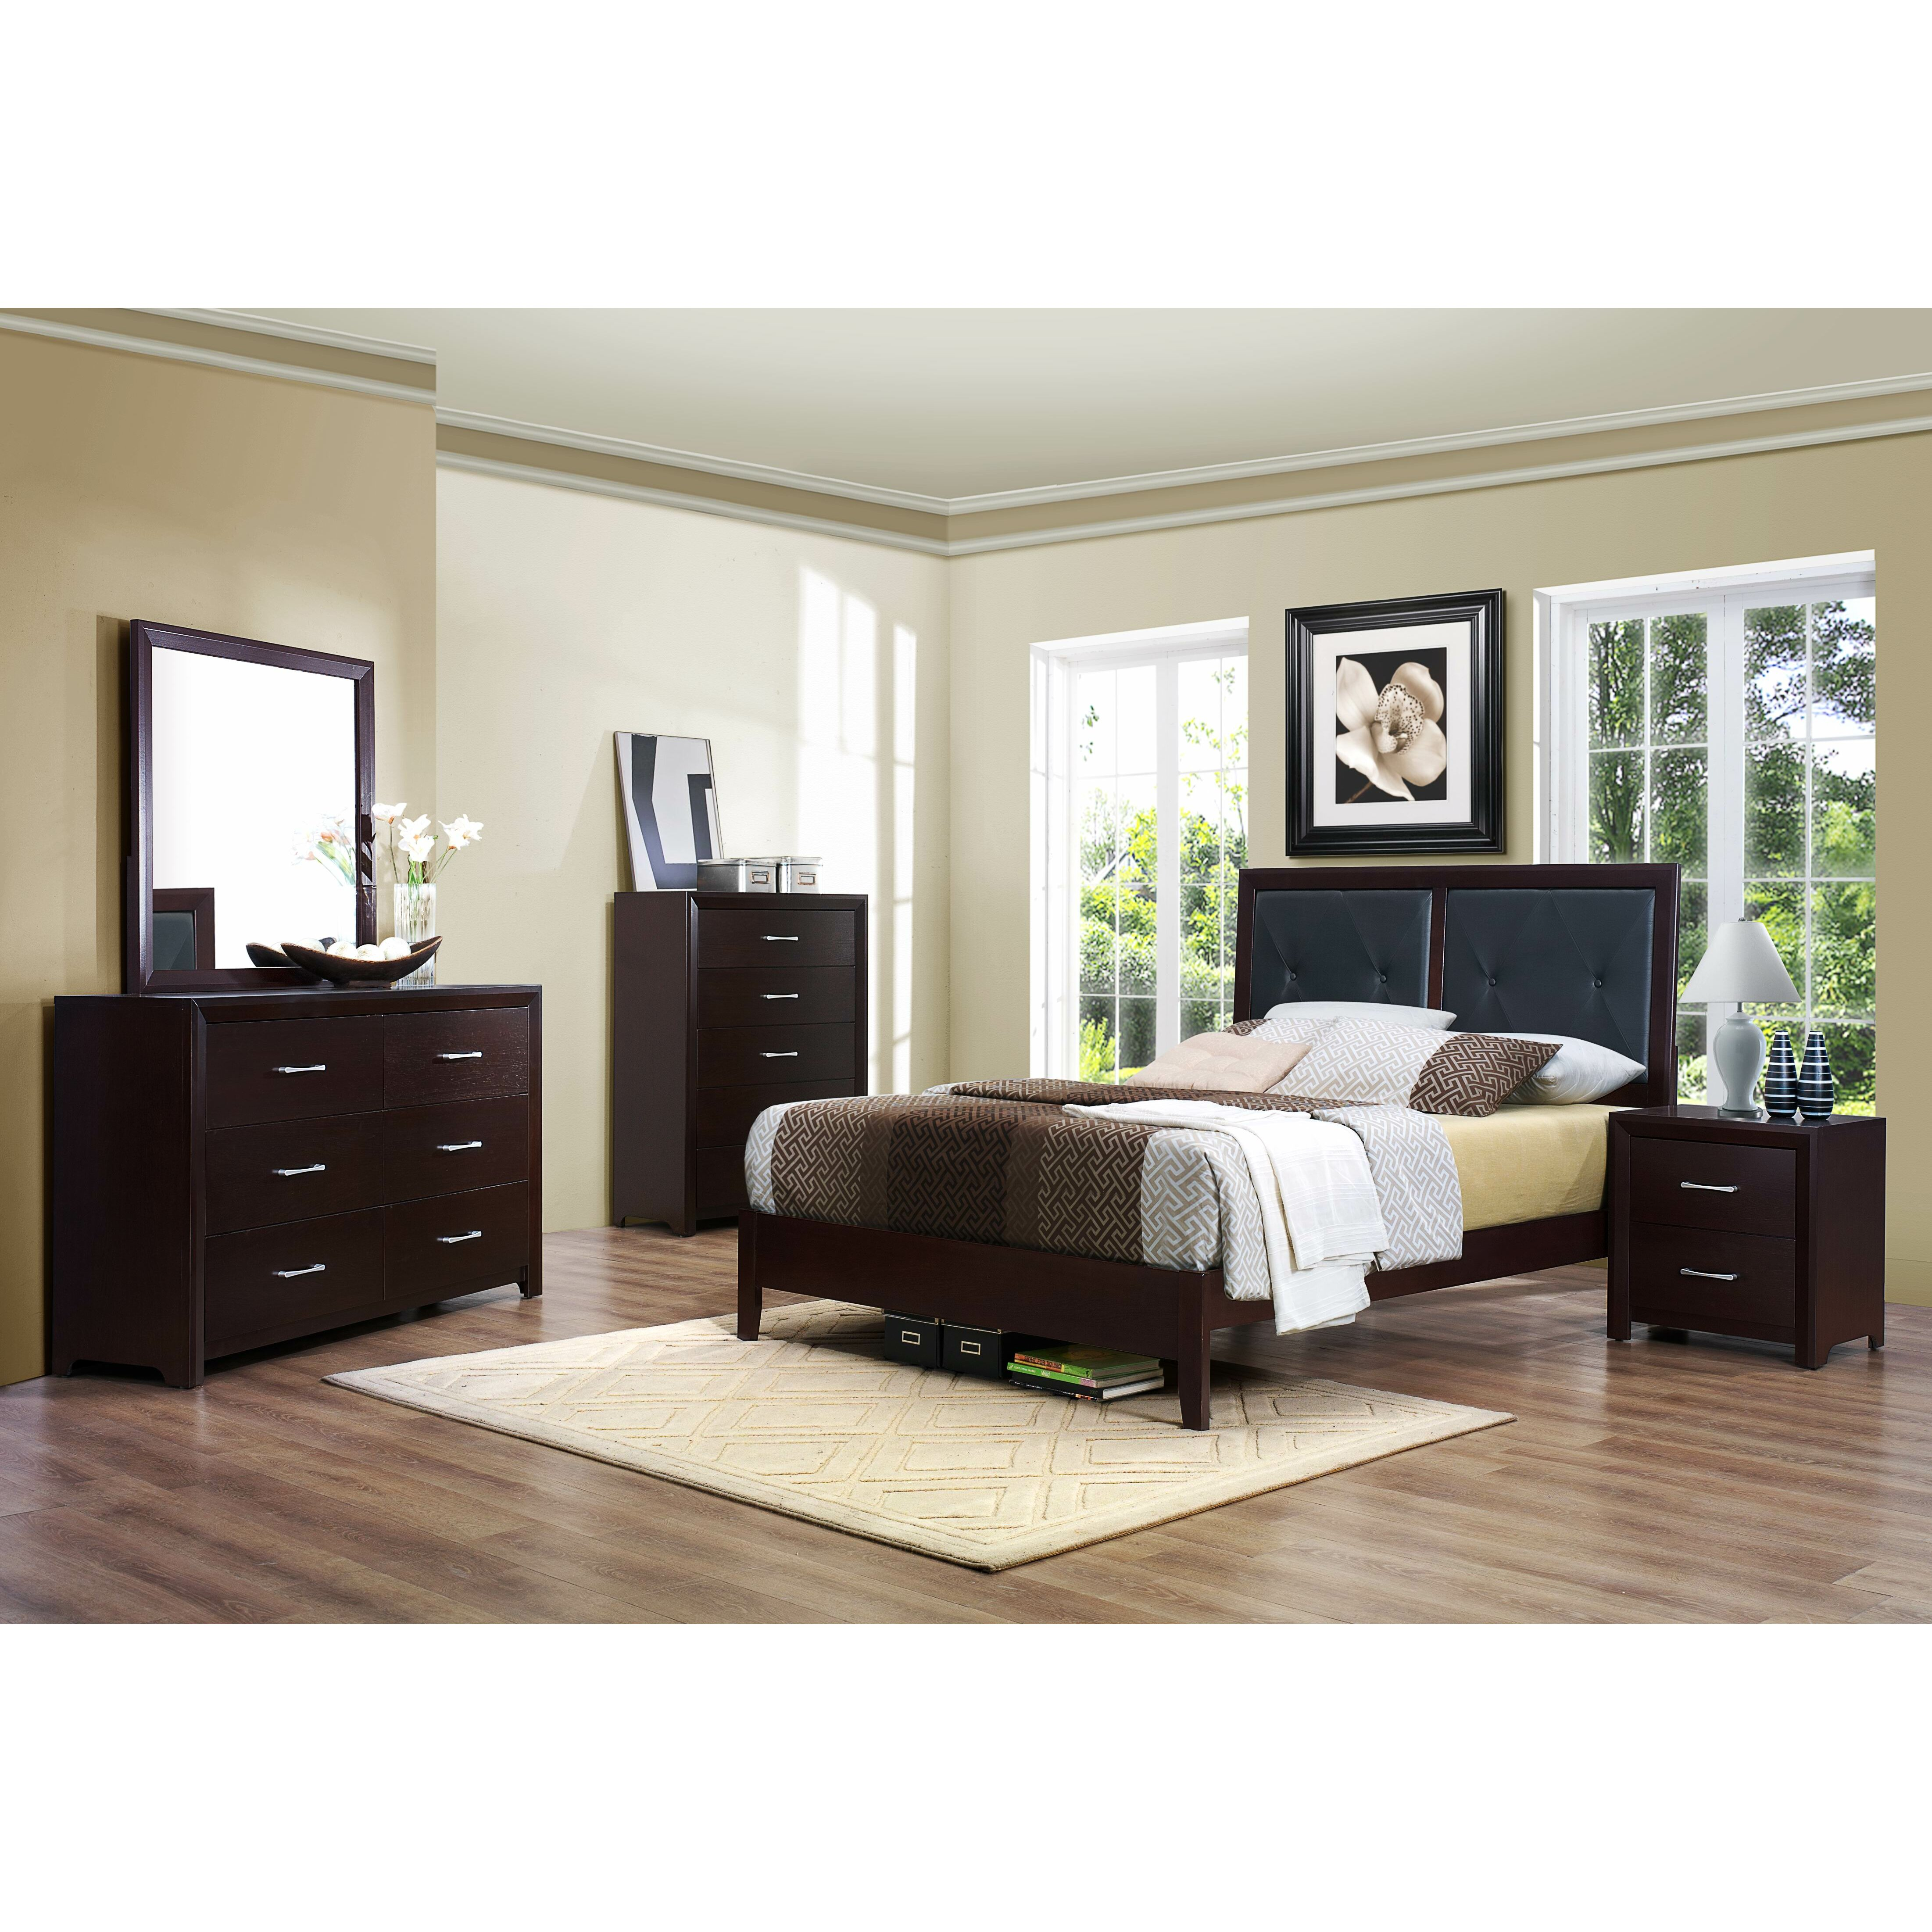 Woodhaven Hill Edina 5 Drawer Chest & Reviews